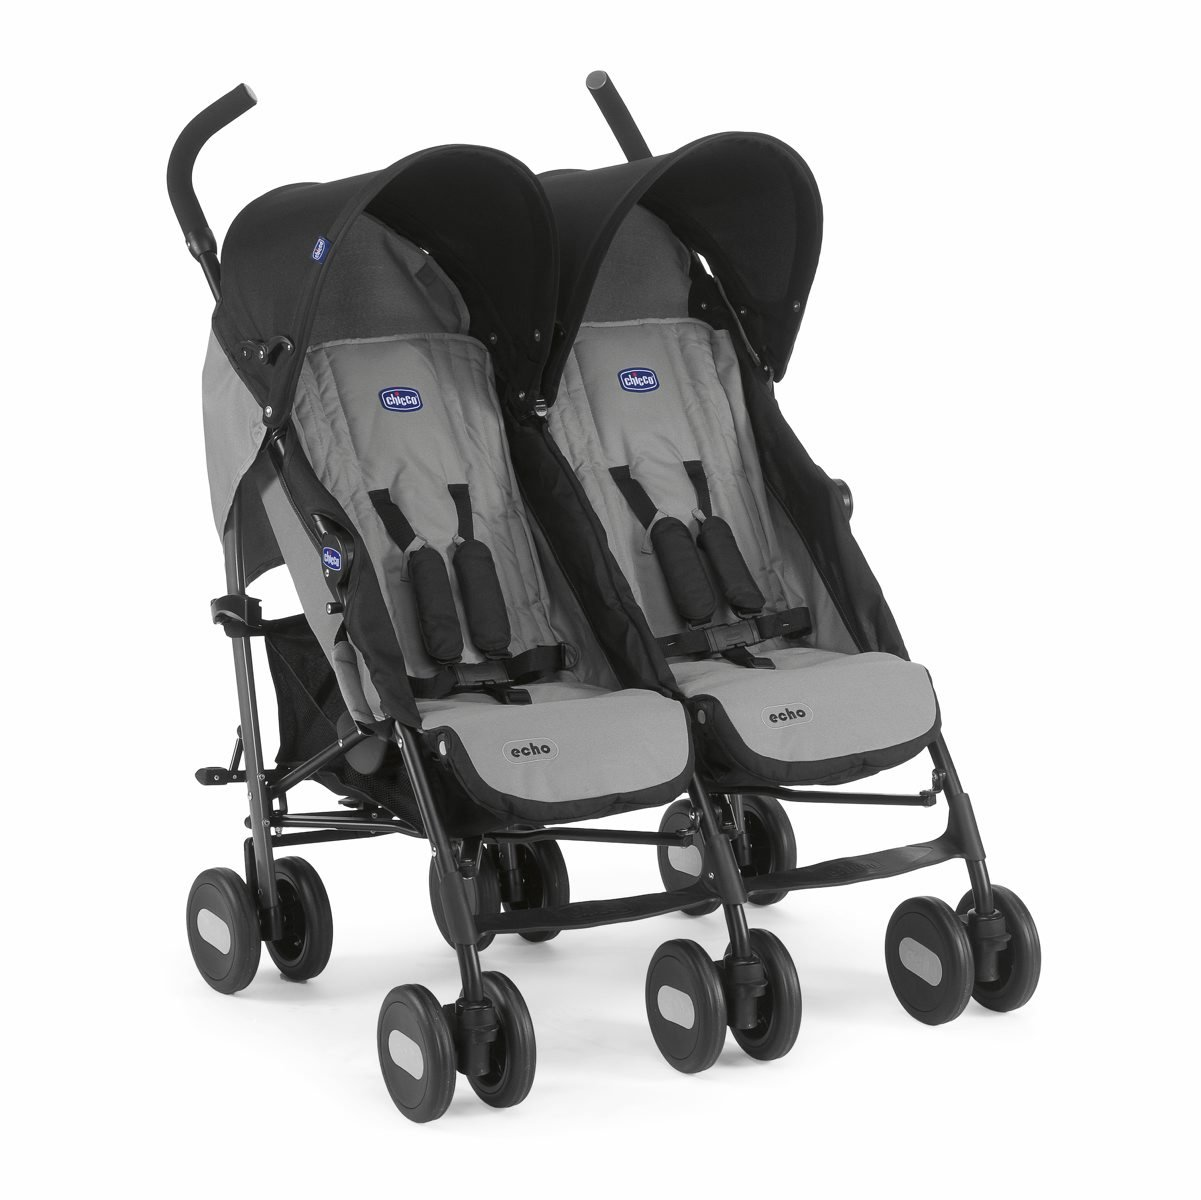 new echo twin stroller from Chicco